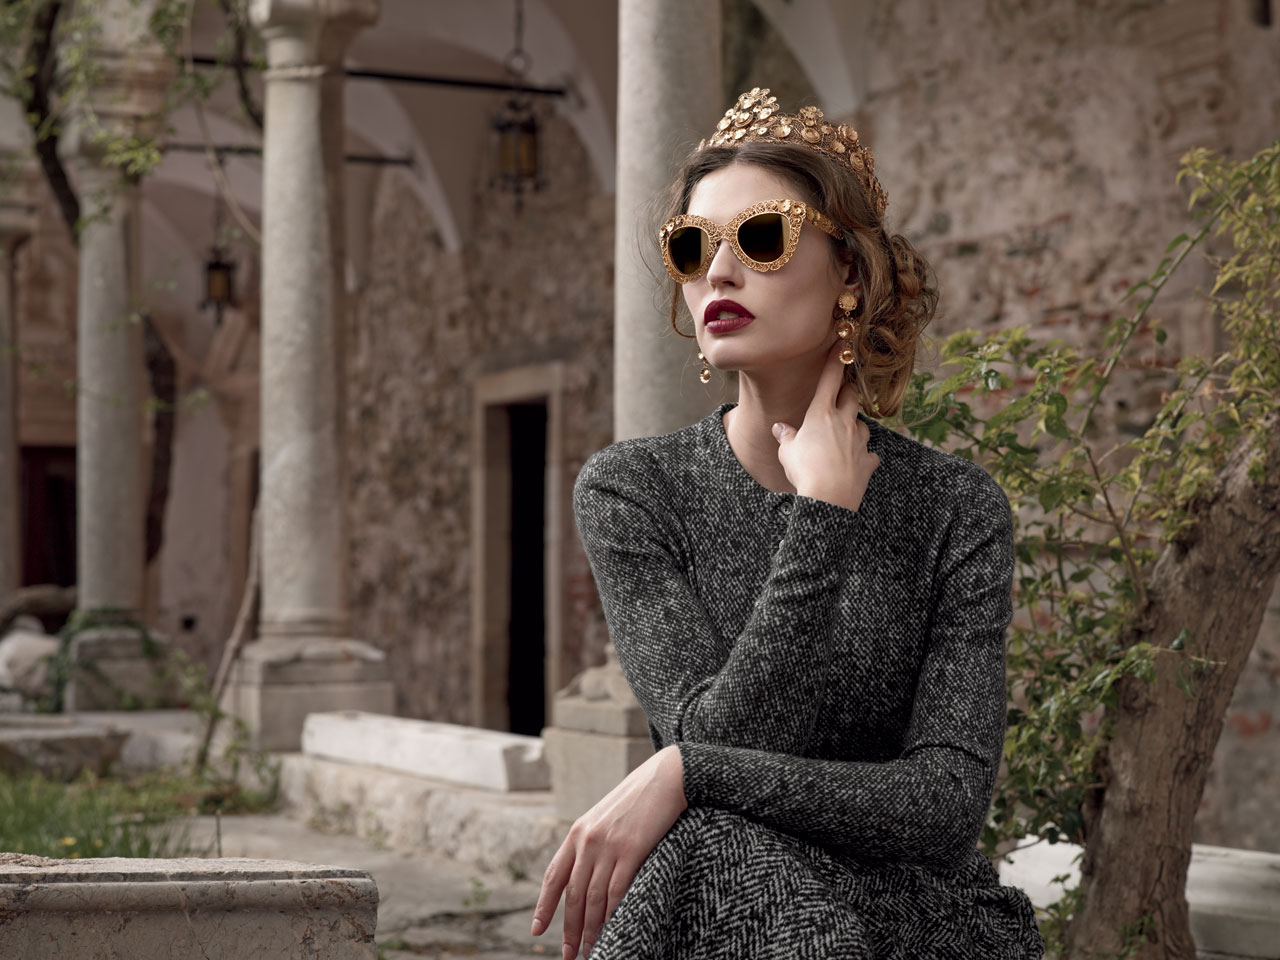 royalty-fashion_gold-frame-eyewear_gold-sunglasses_eyewear-trends-2014_dolce-gabbana-ad-sunglasses-campaign-fw-2014-women-4